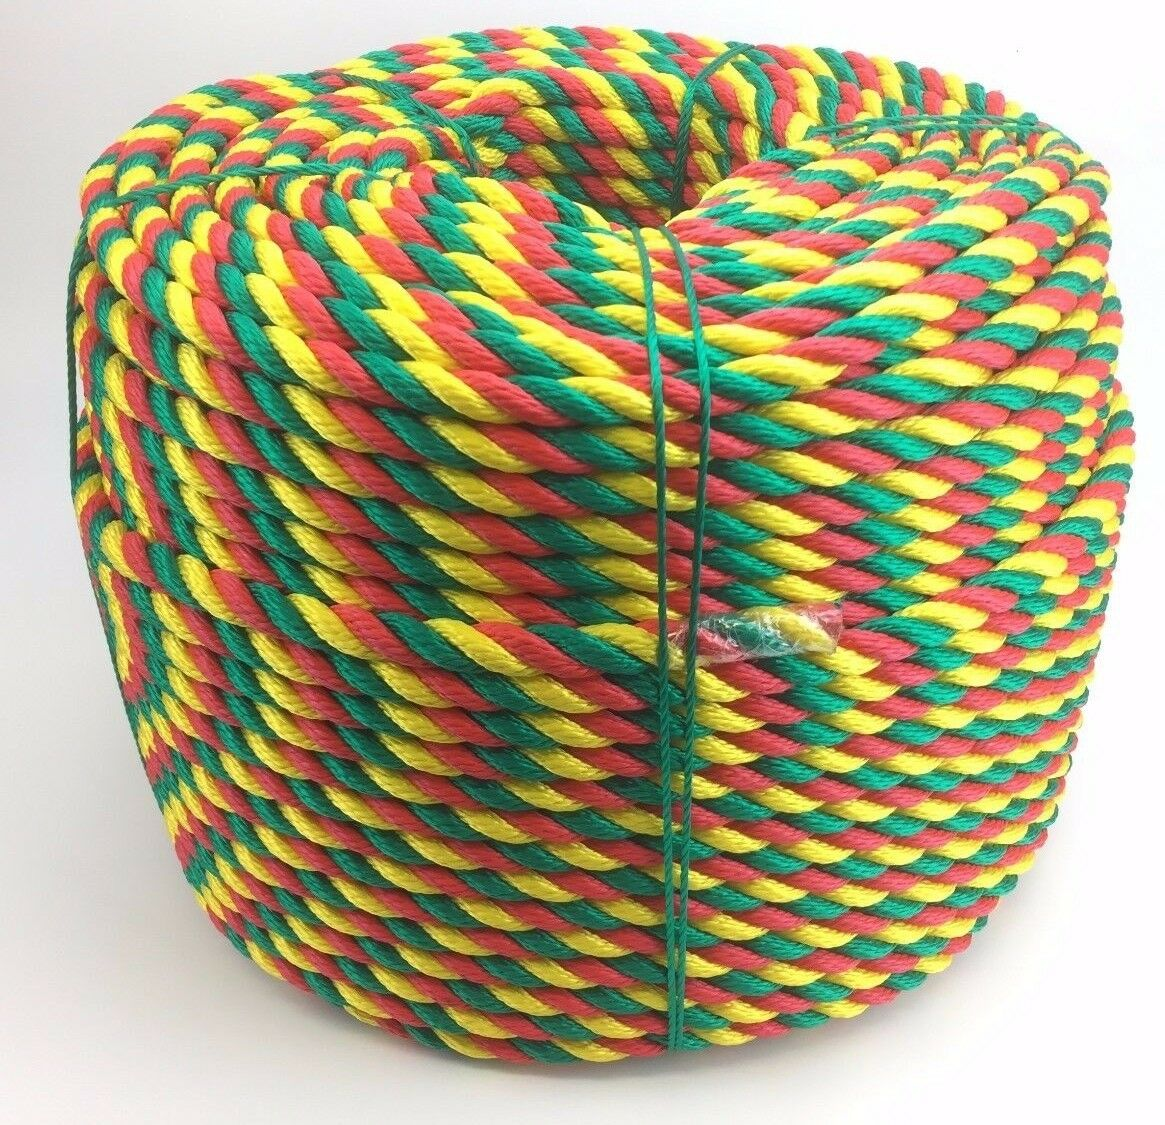 12mm Softline Rope x 30 Metres Coil, Jester, Yacht, Sailing, Boats, Marine